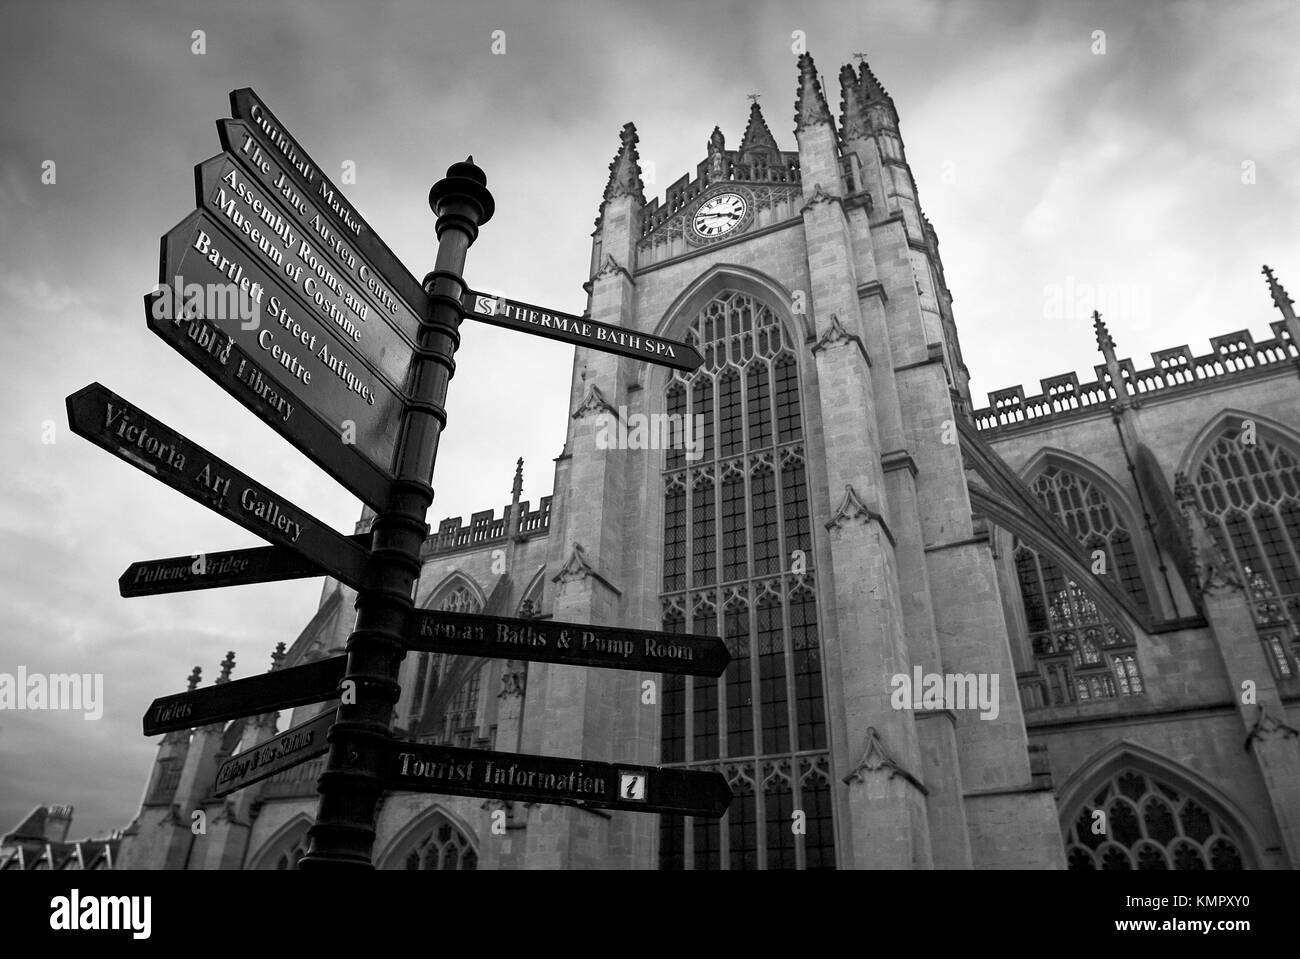 Bath abbey. England, UK - Stock Image